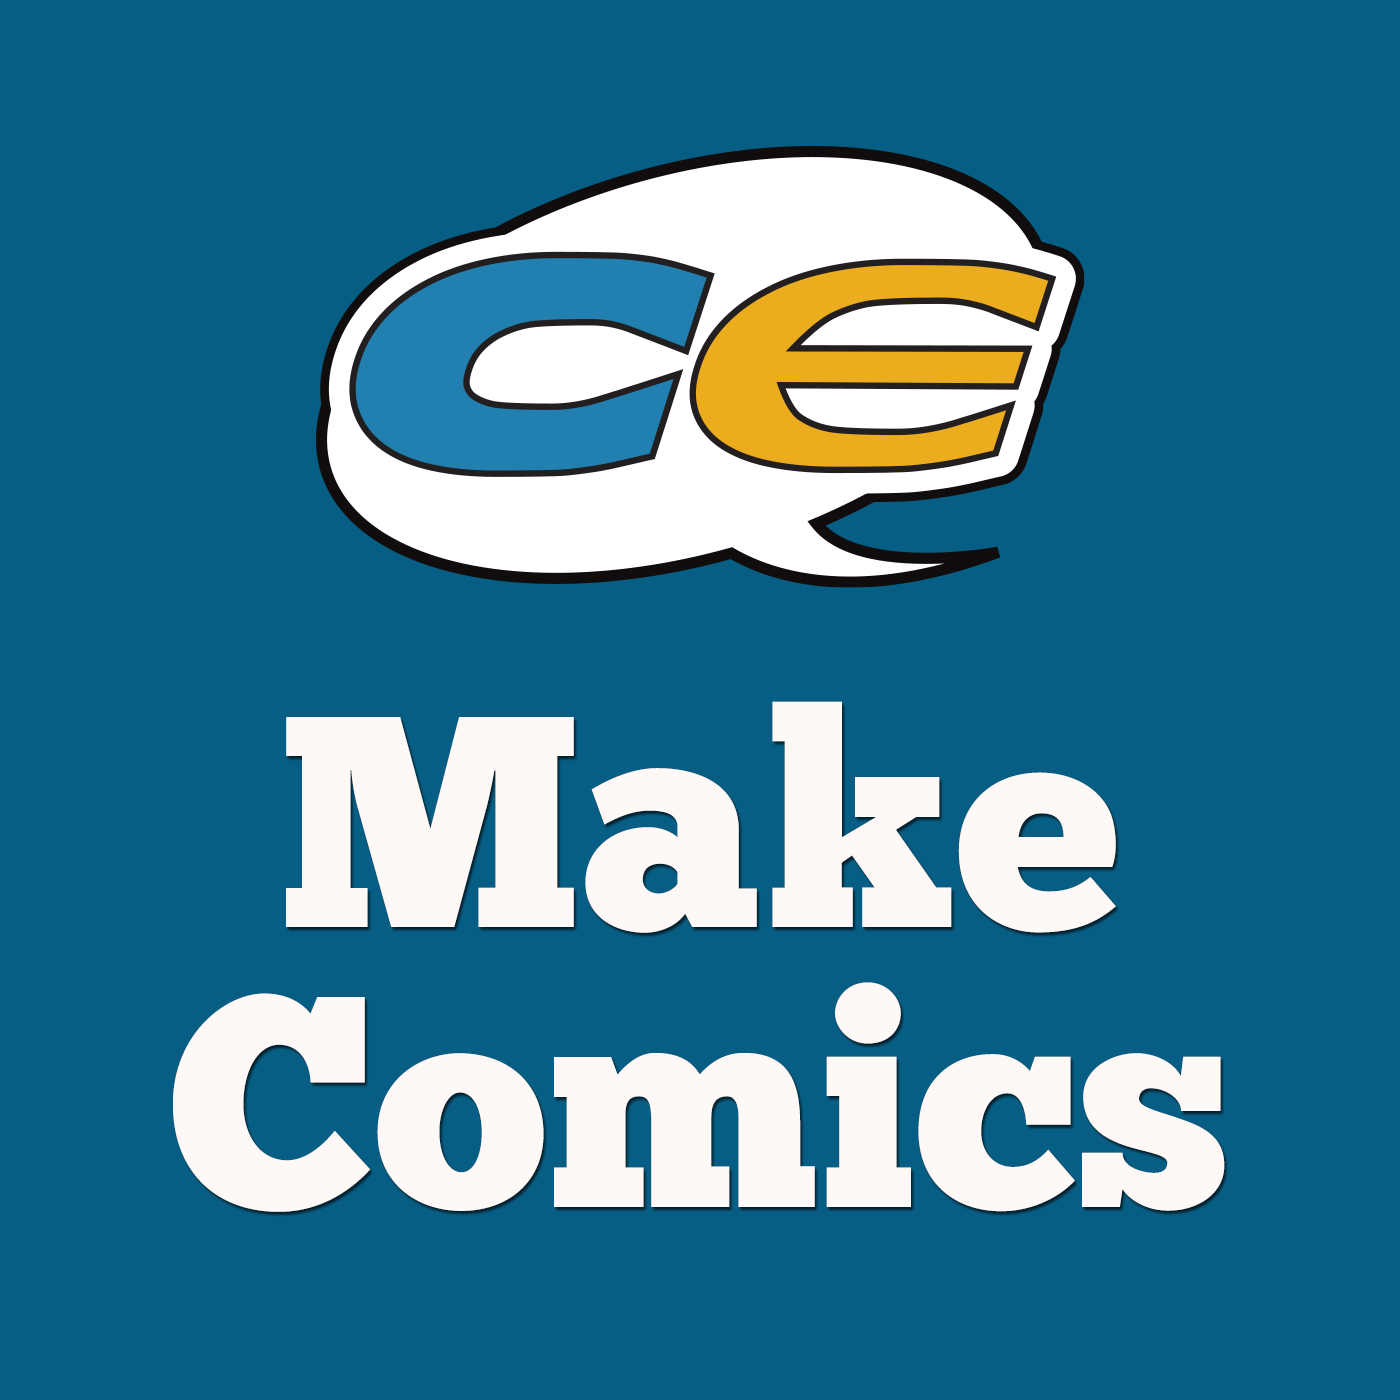 Make Comics Podcast logo